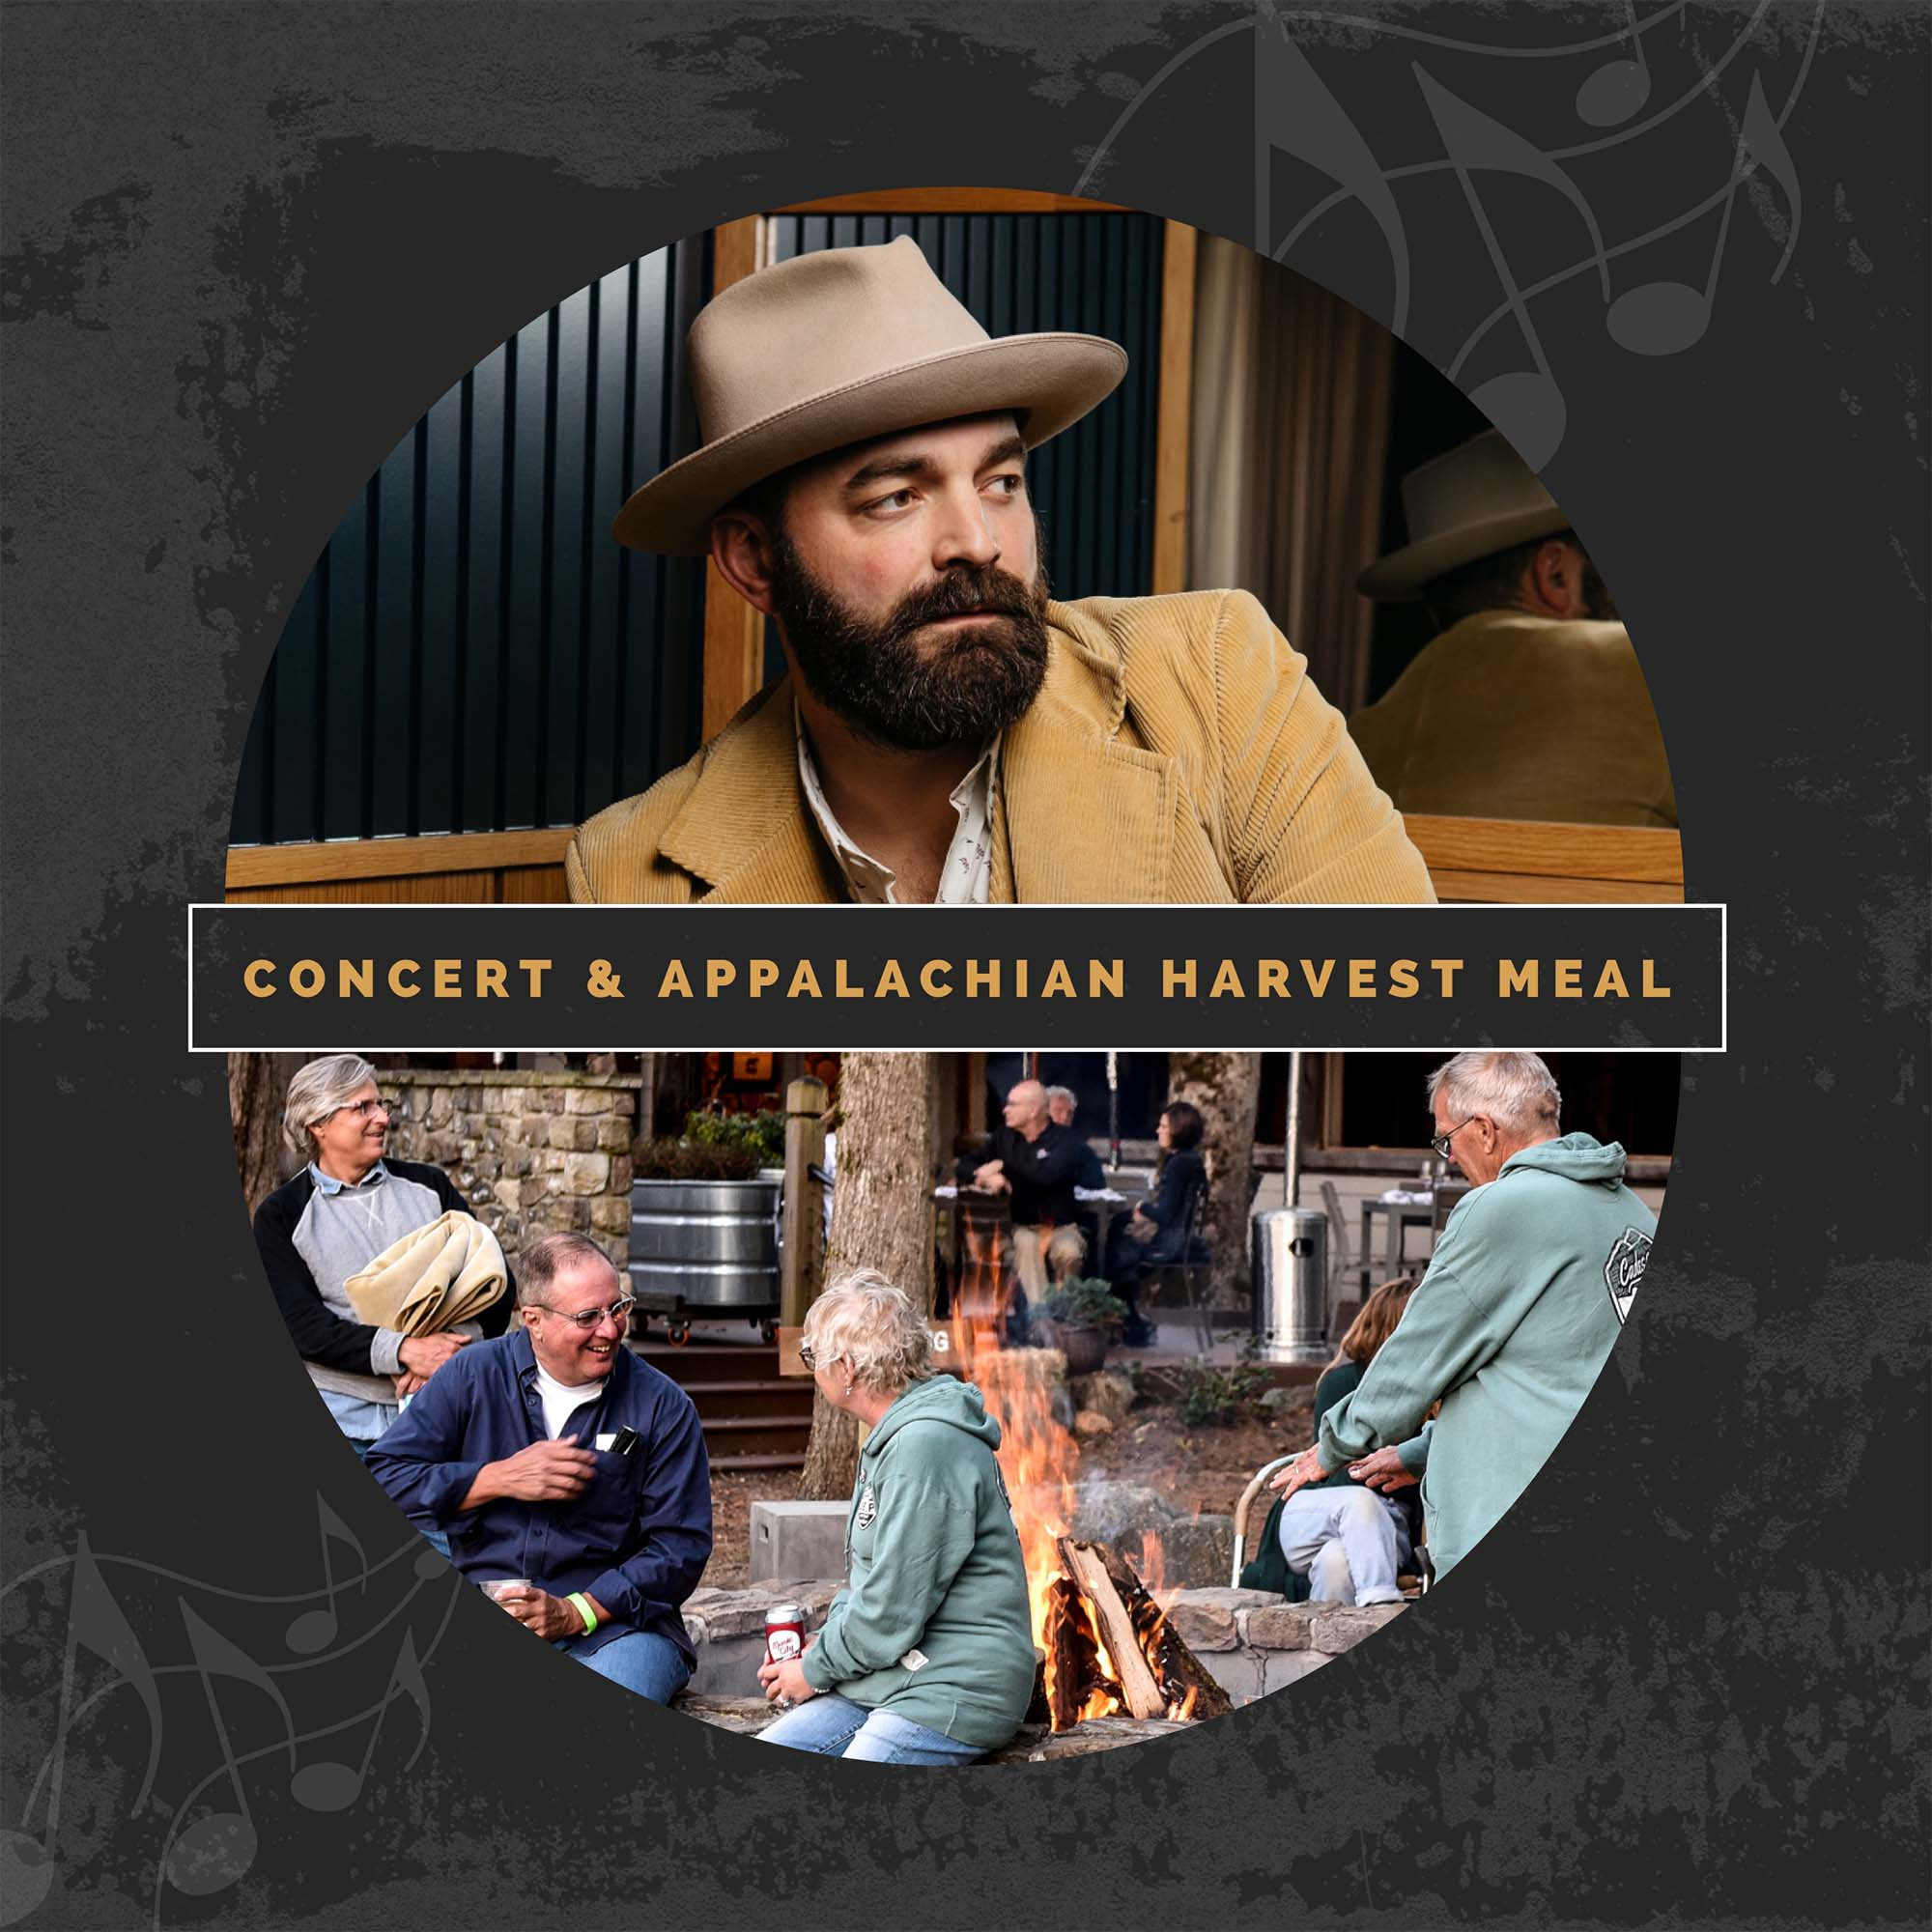 Concert and Appalachian Harvest Meal